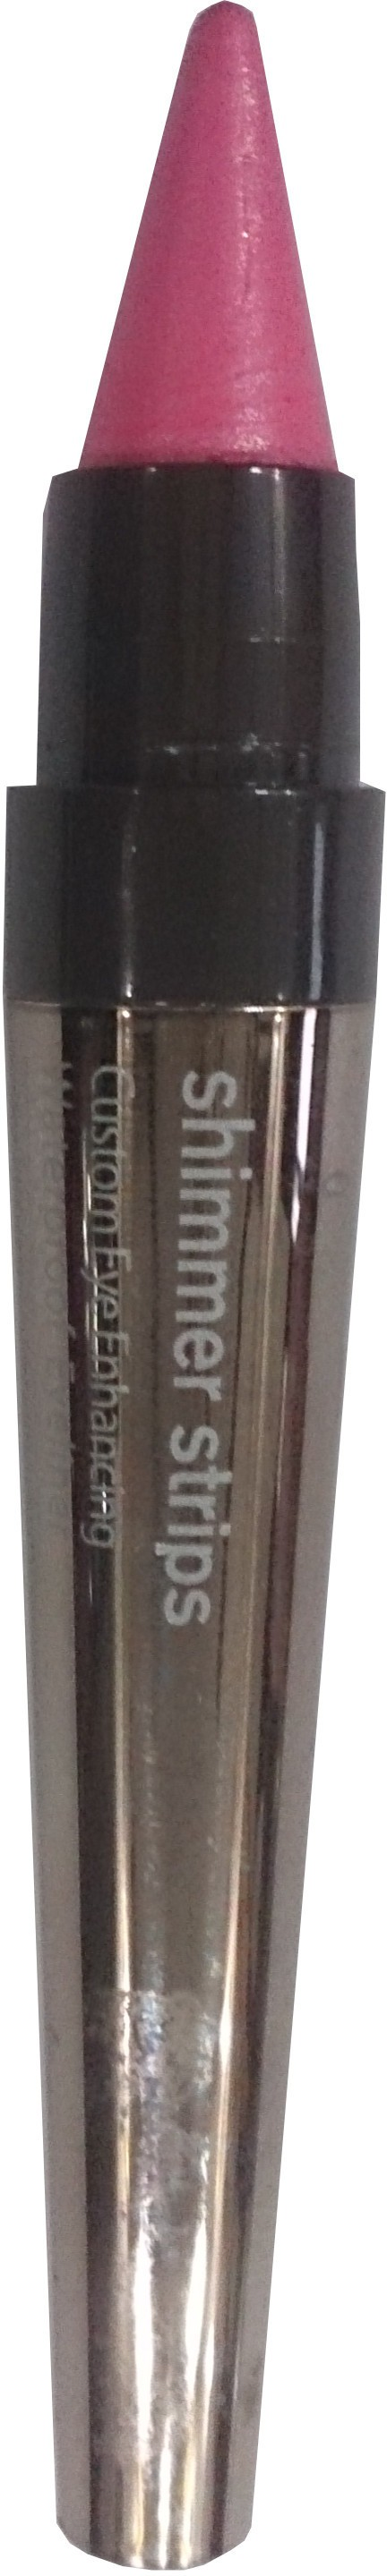 Sivanna Shimmer Strips Custom Eye Enhancing Waterproof Eyeliner 2 g(Pink 04)